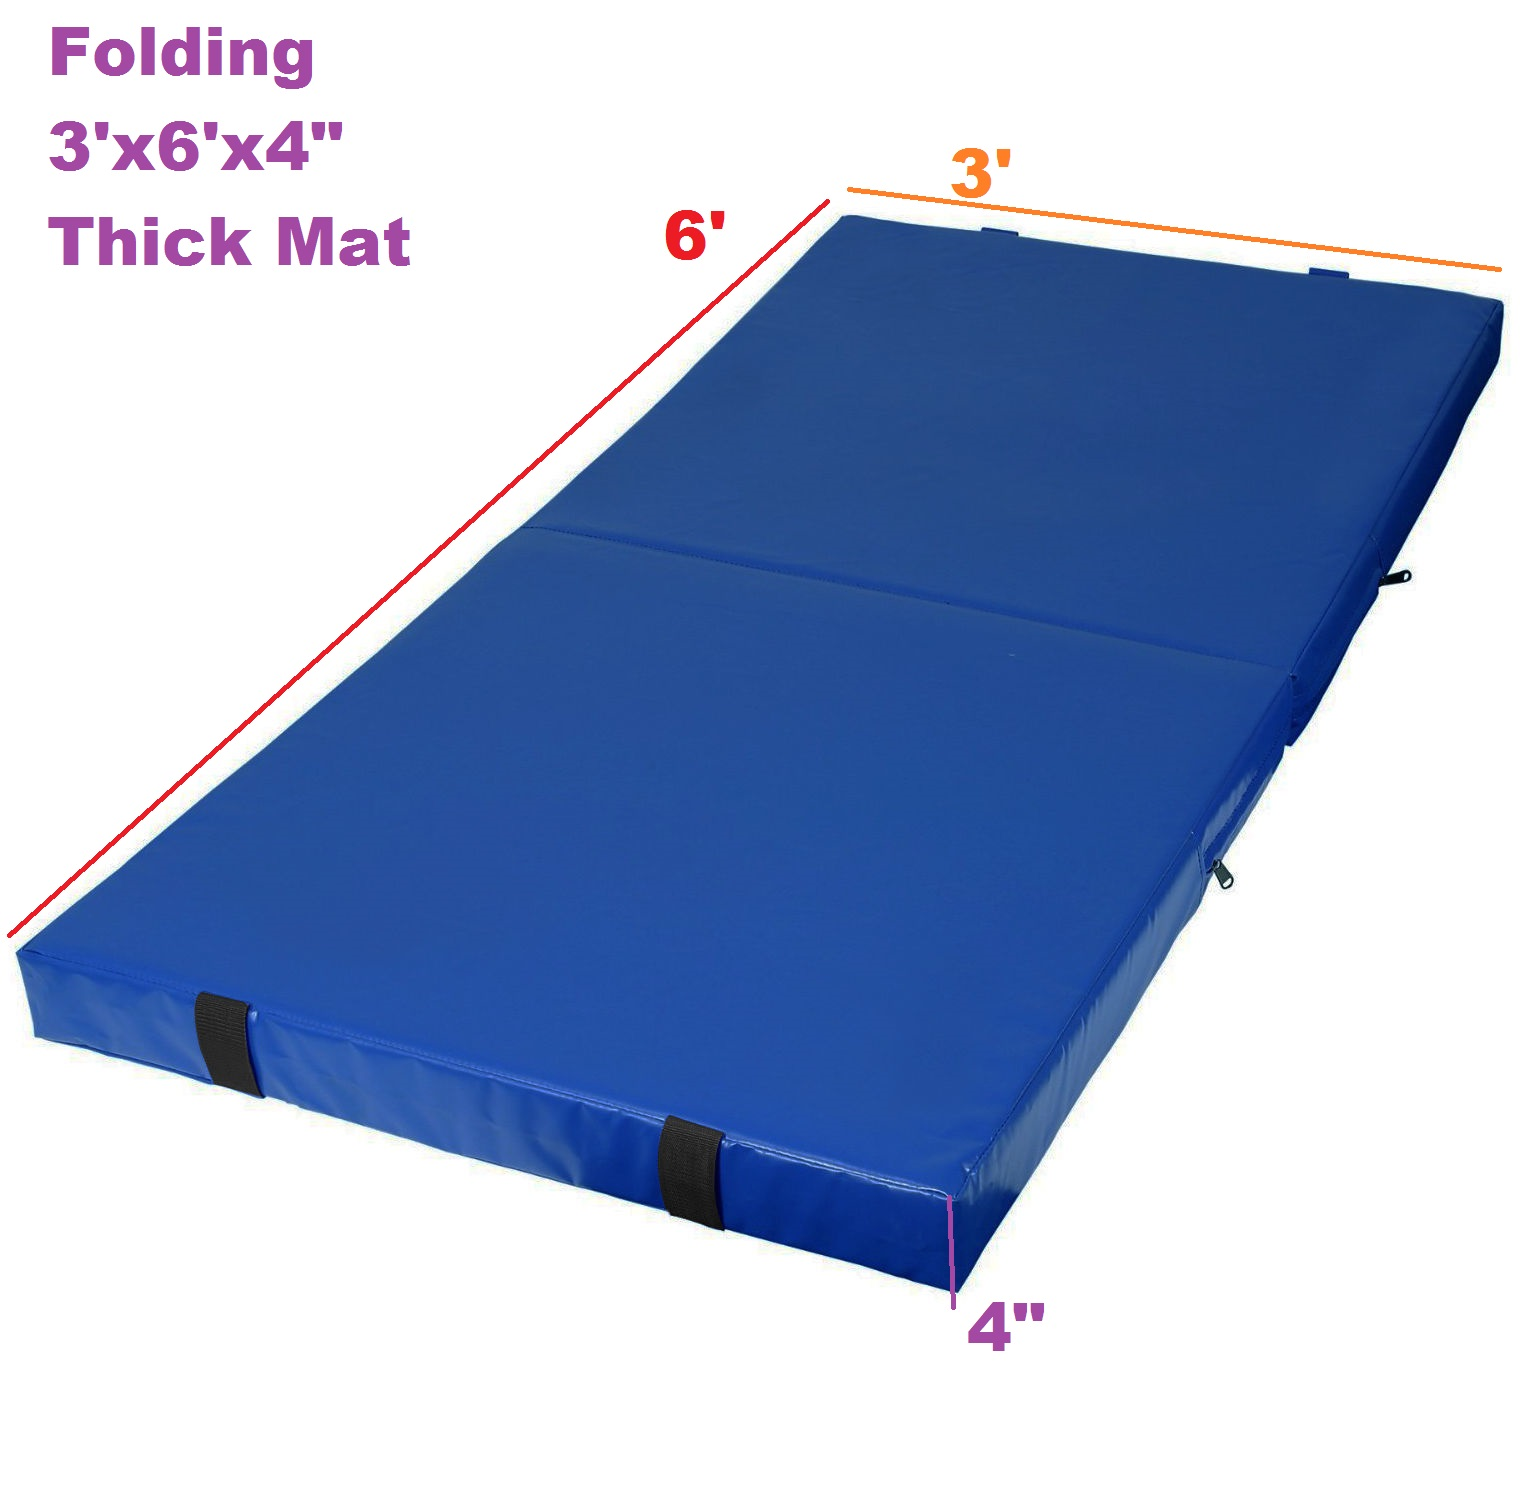 mats gymnastic gray products side quality amazing for surface mat purple home use airtracks